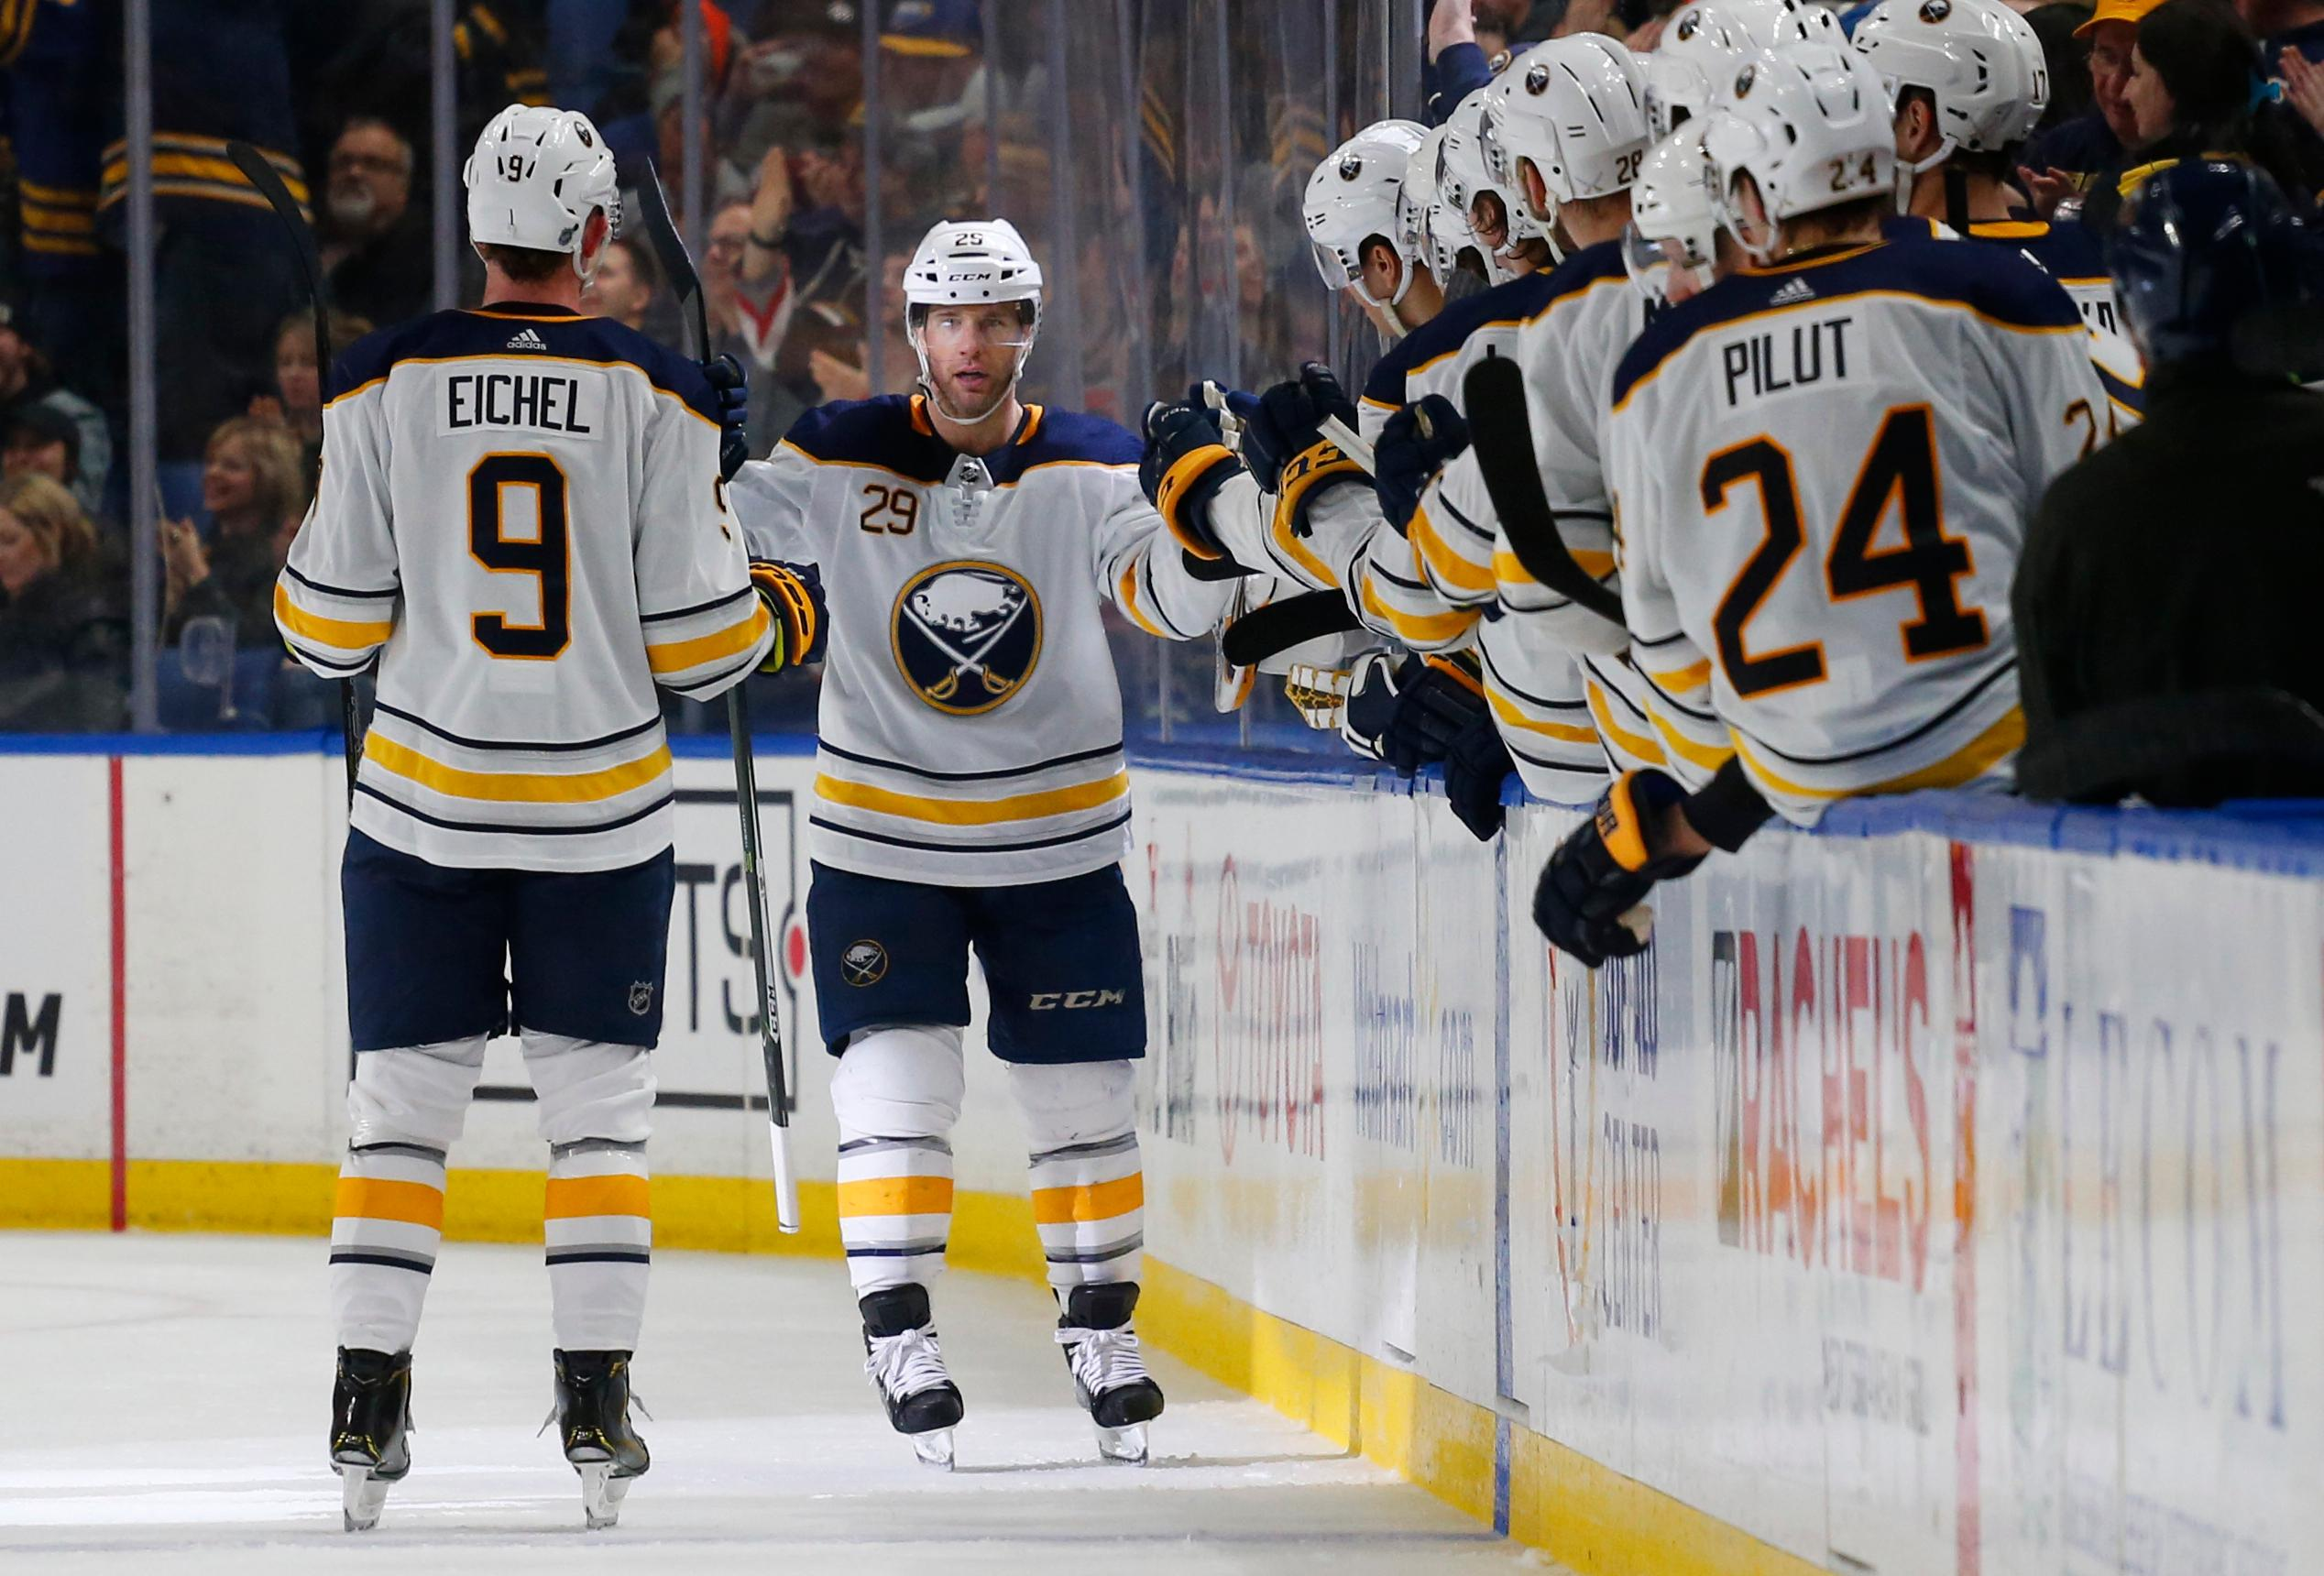 Buffalo Sabres forward Jason Pominville (29) celebrates his goal with teammates during the second period of an NHL hockey game against the Carolina Hurricanes, Thursday, Feb. 7, 2019, in Buffalo N.Y. (AP Photo/Jeffrey T. Barnes)